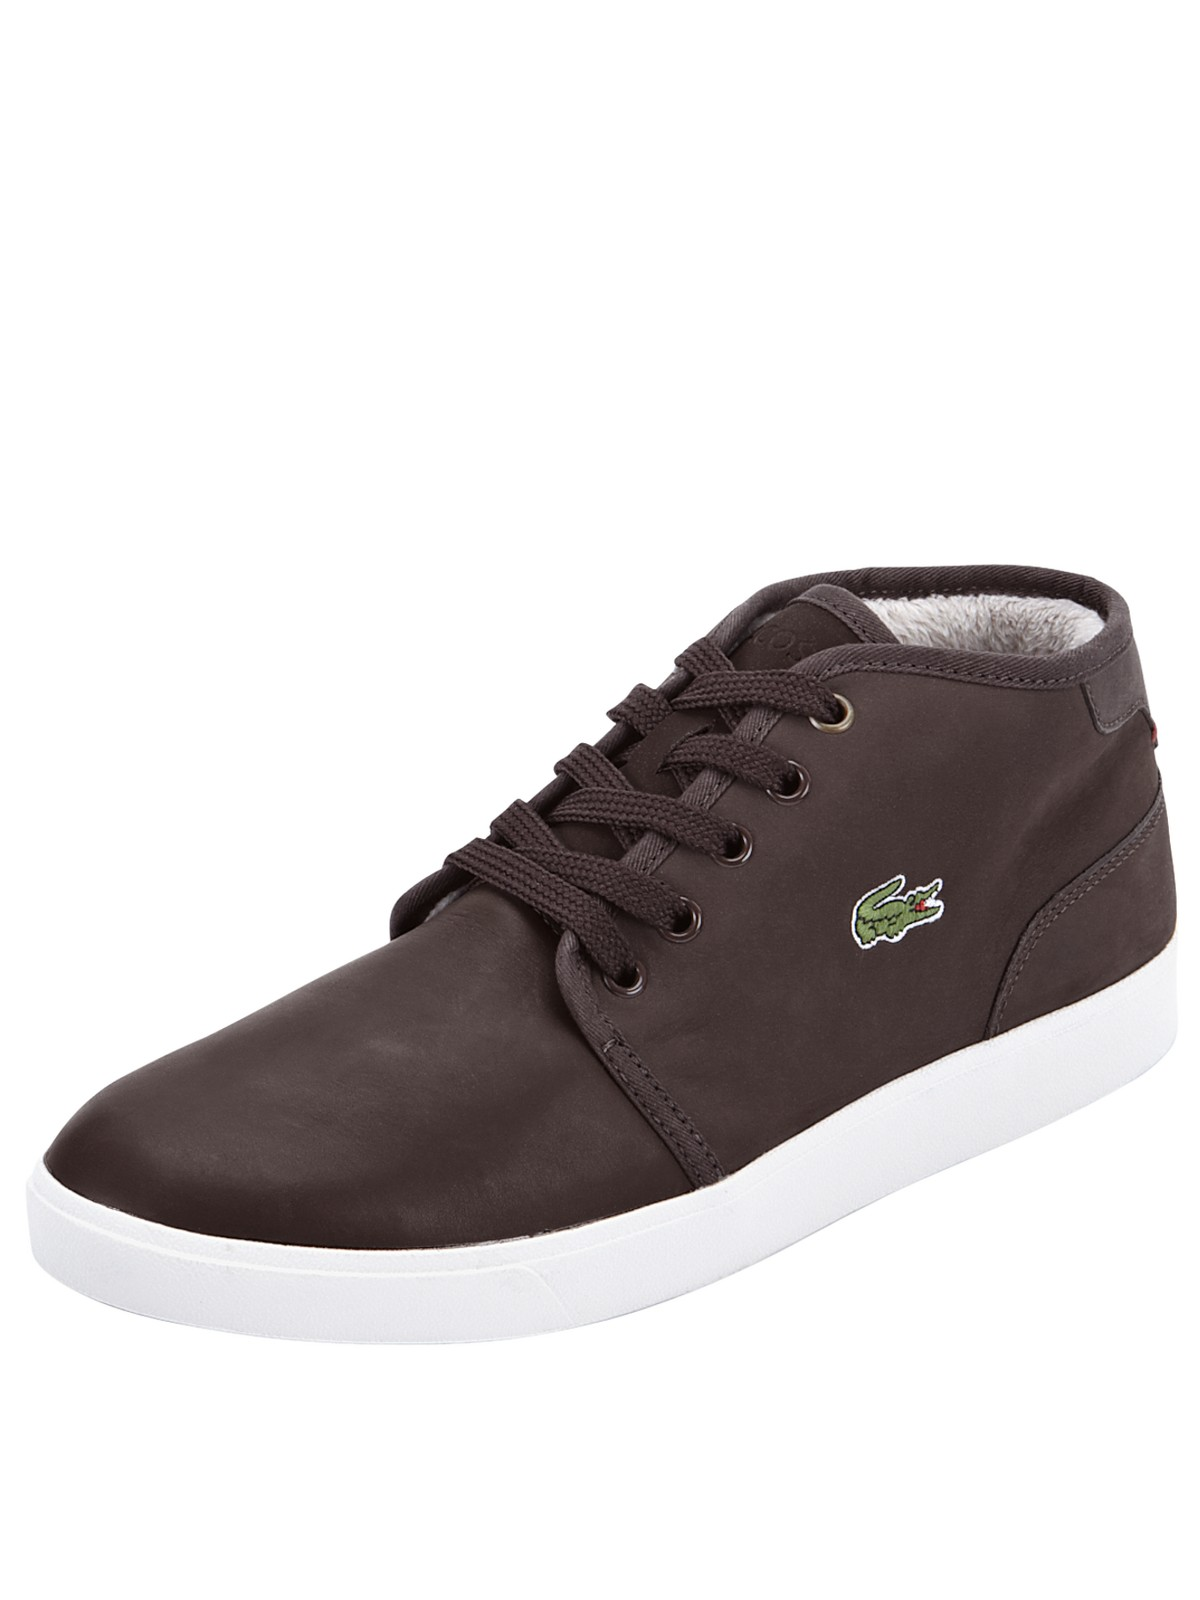 lacoste lacoste benoit fur lined mens boots in brown for